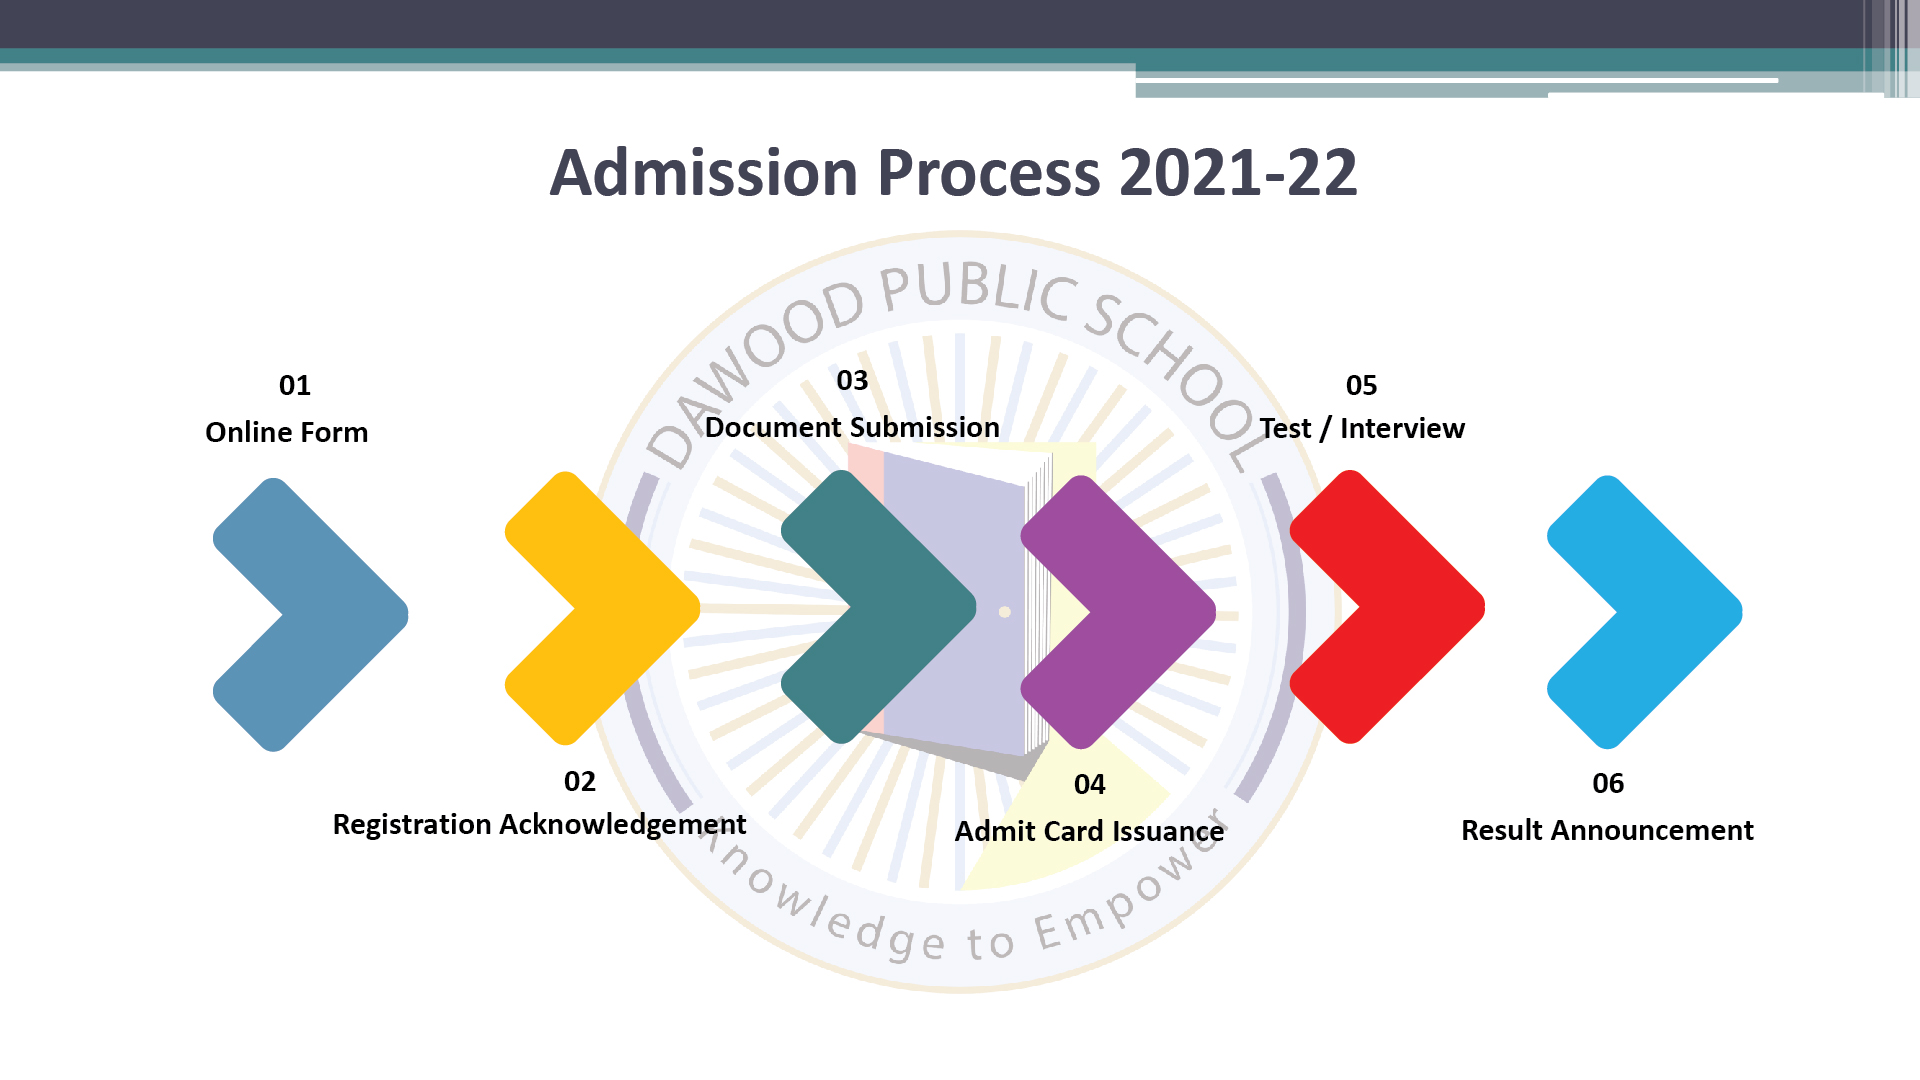 Schedule For Admission